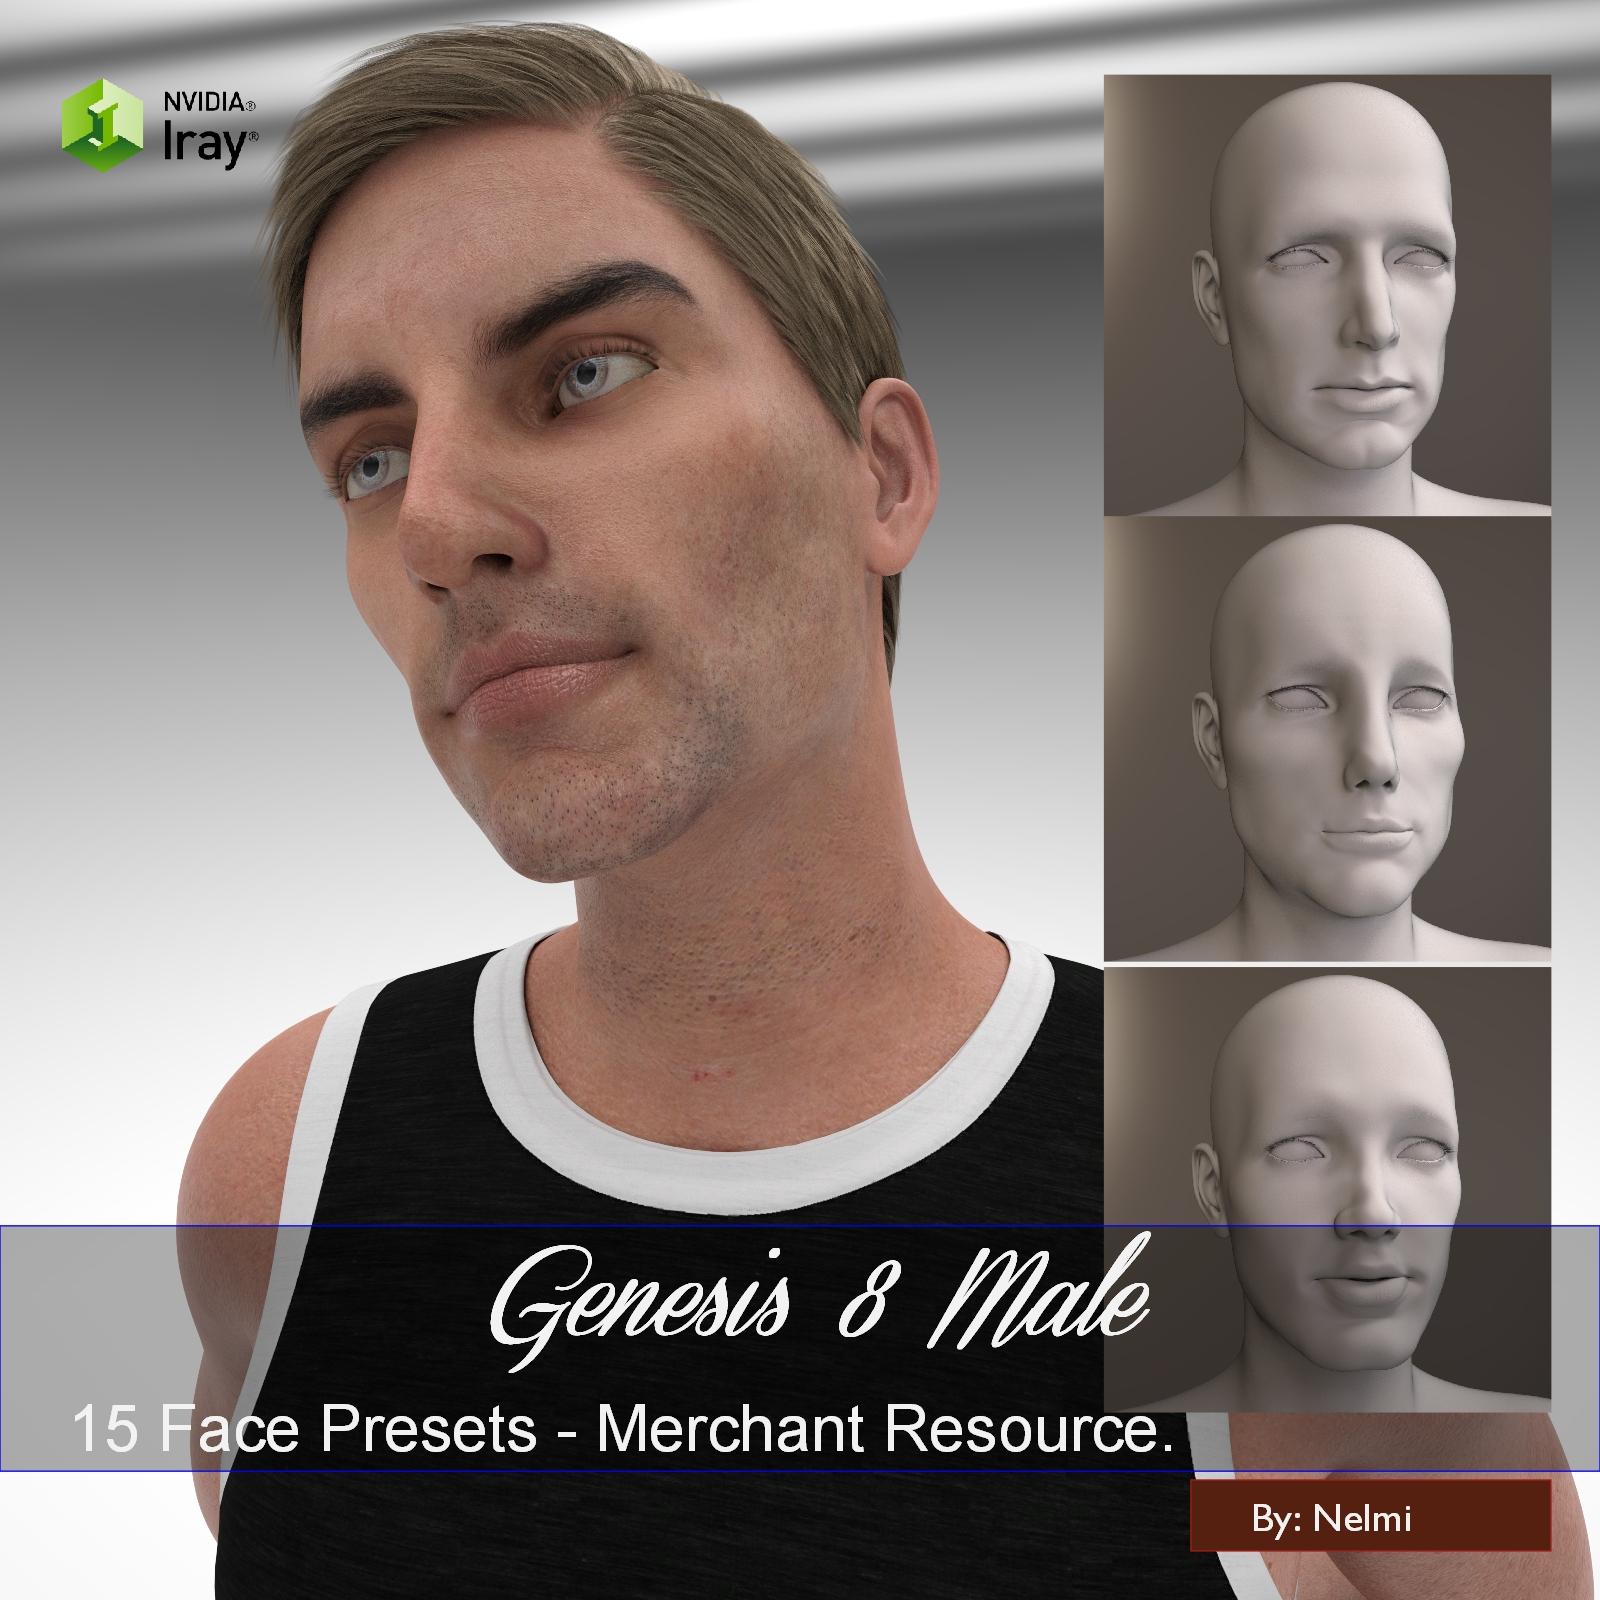 15 Face Presets for Genesis 8 Male - Merchant Resource